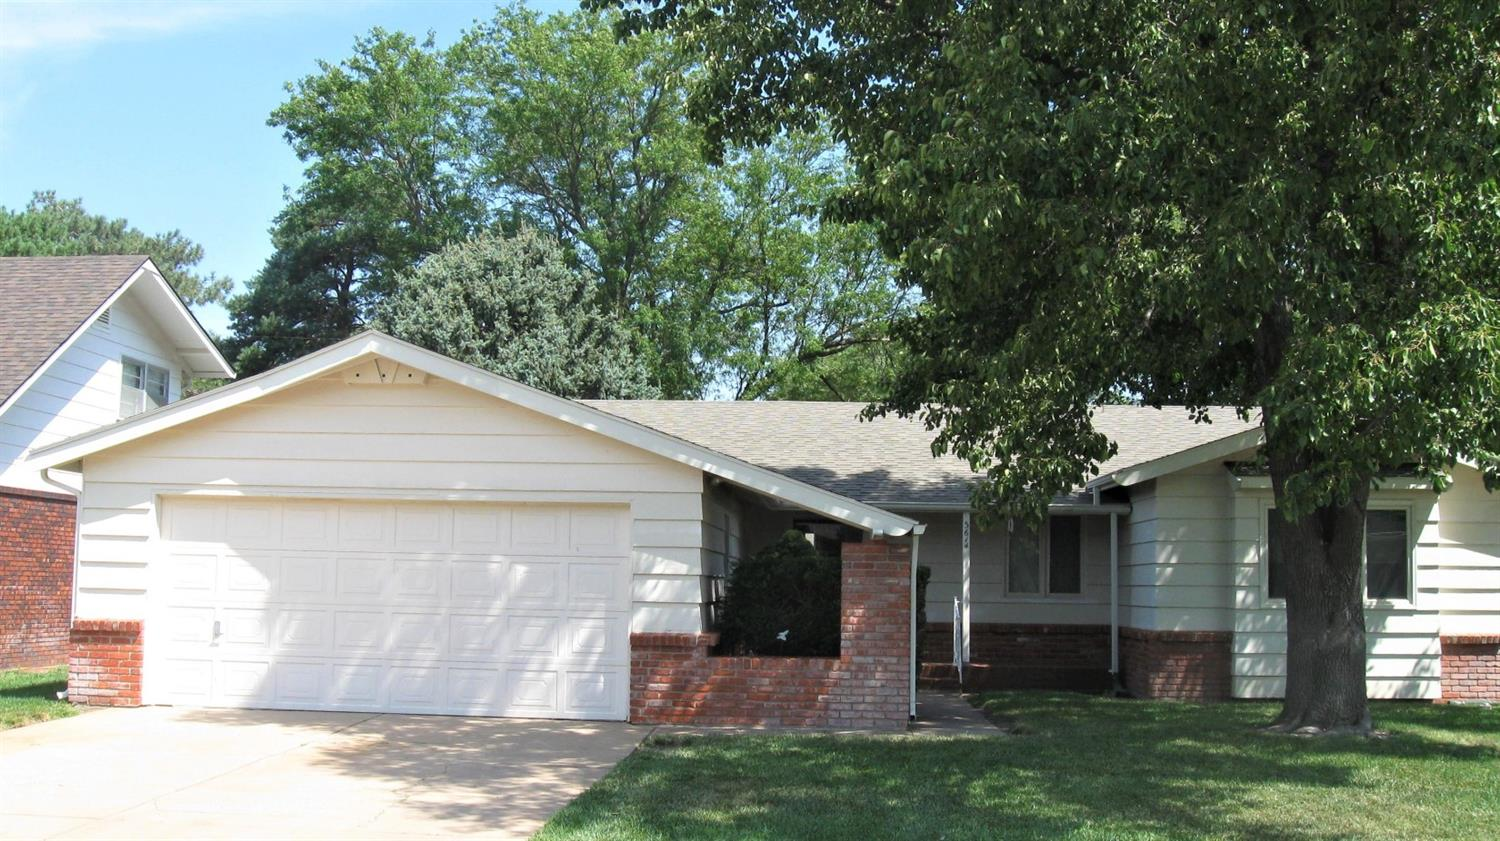 Spacious home with almost 1900 sq. ft. on 1 level. Eat in kitchen & formal dining room. Master bedroom & bath has separate tub & shower plus extra wide doors. Large Closets! CH/CA combo unit new in 2014. Double attached garage. IR Malarkey Roof 6/19.